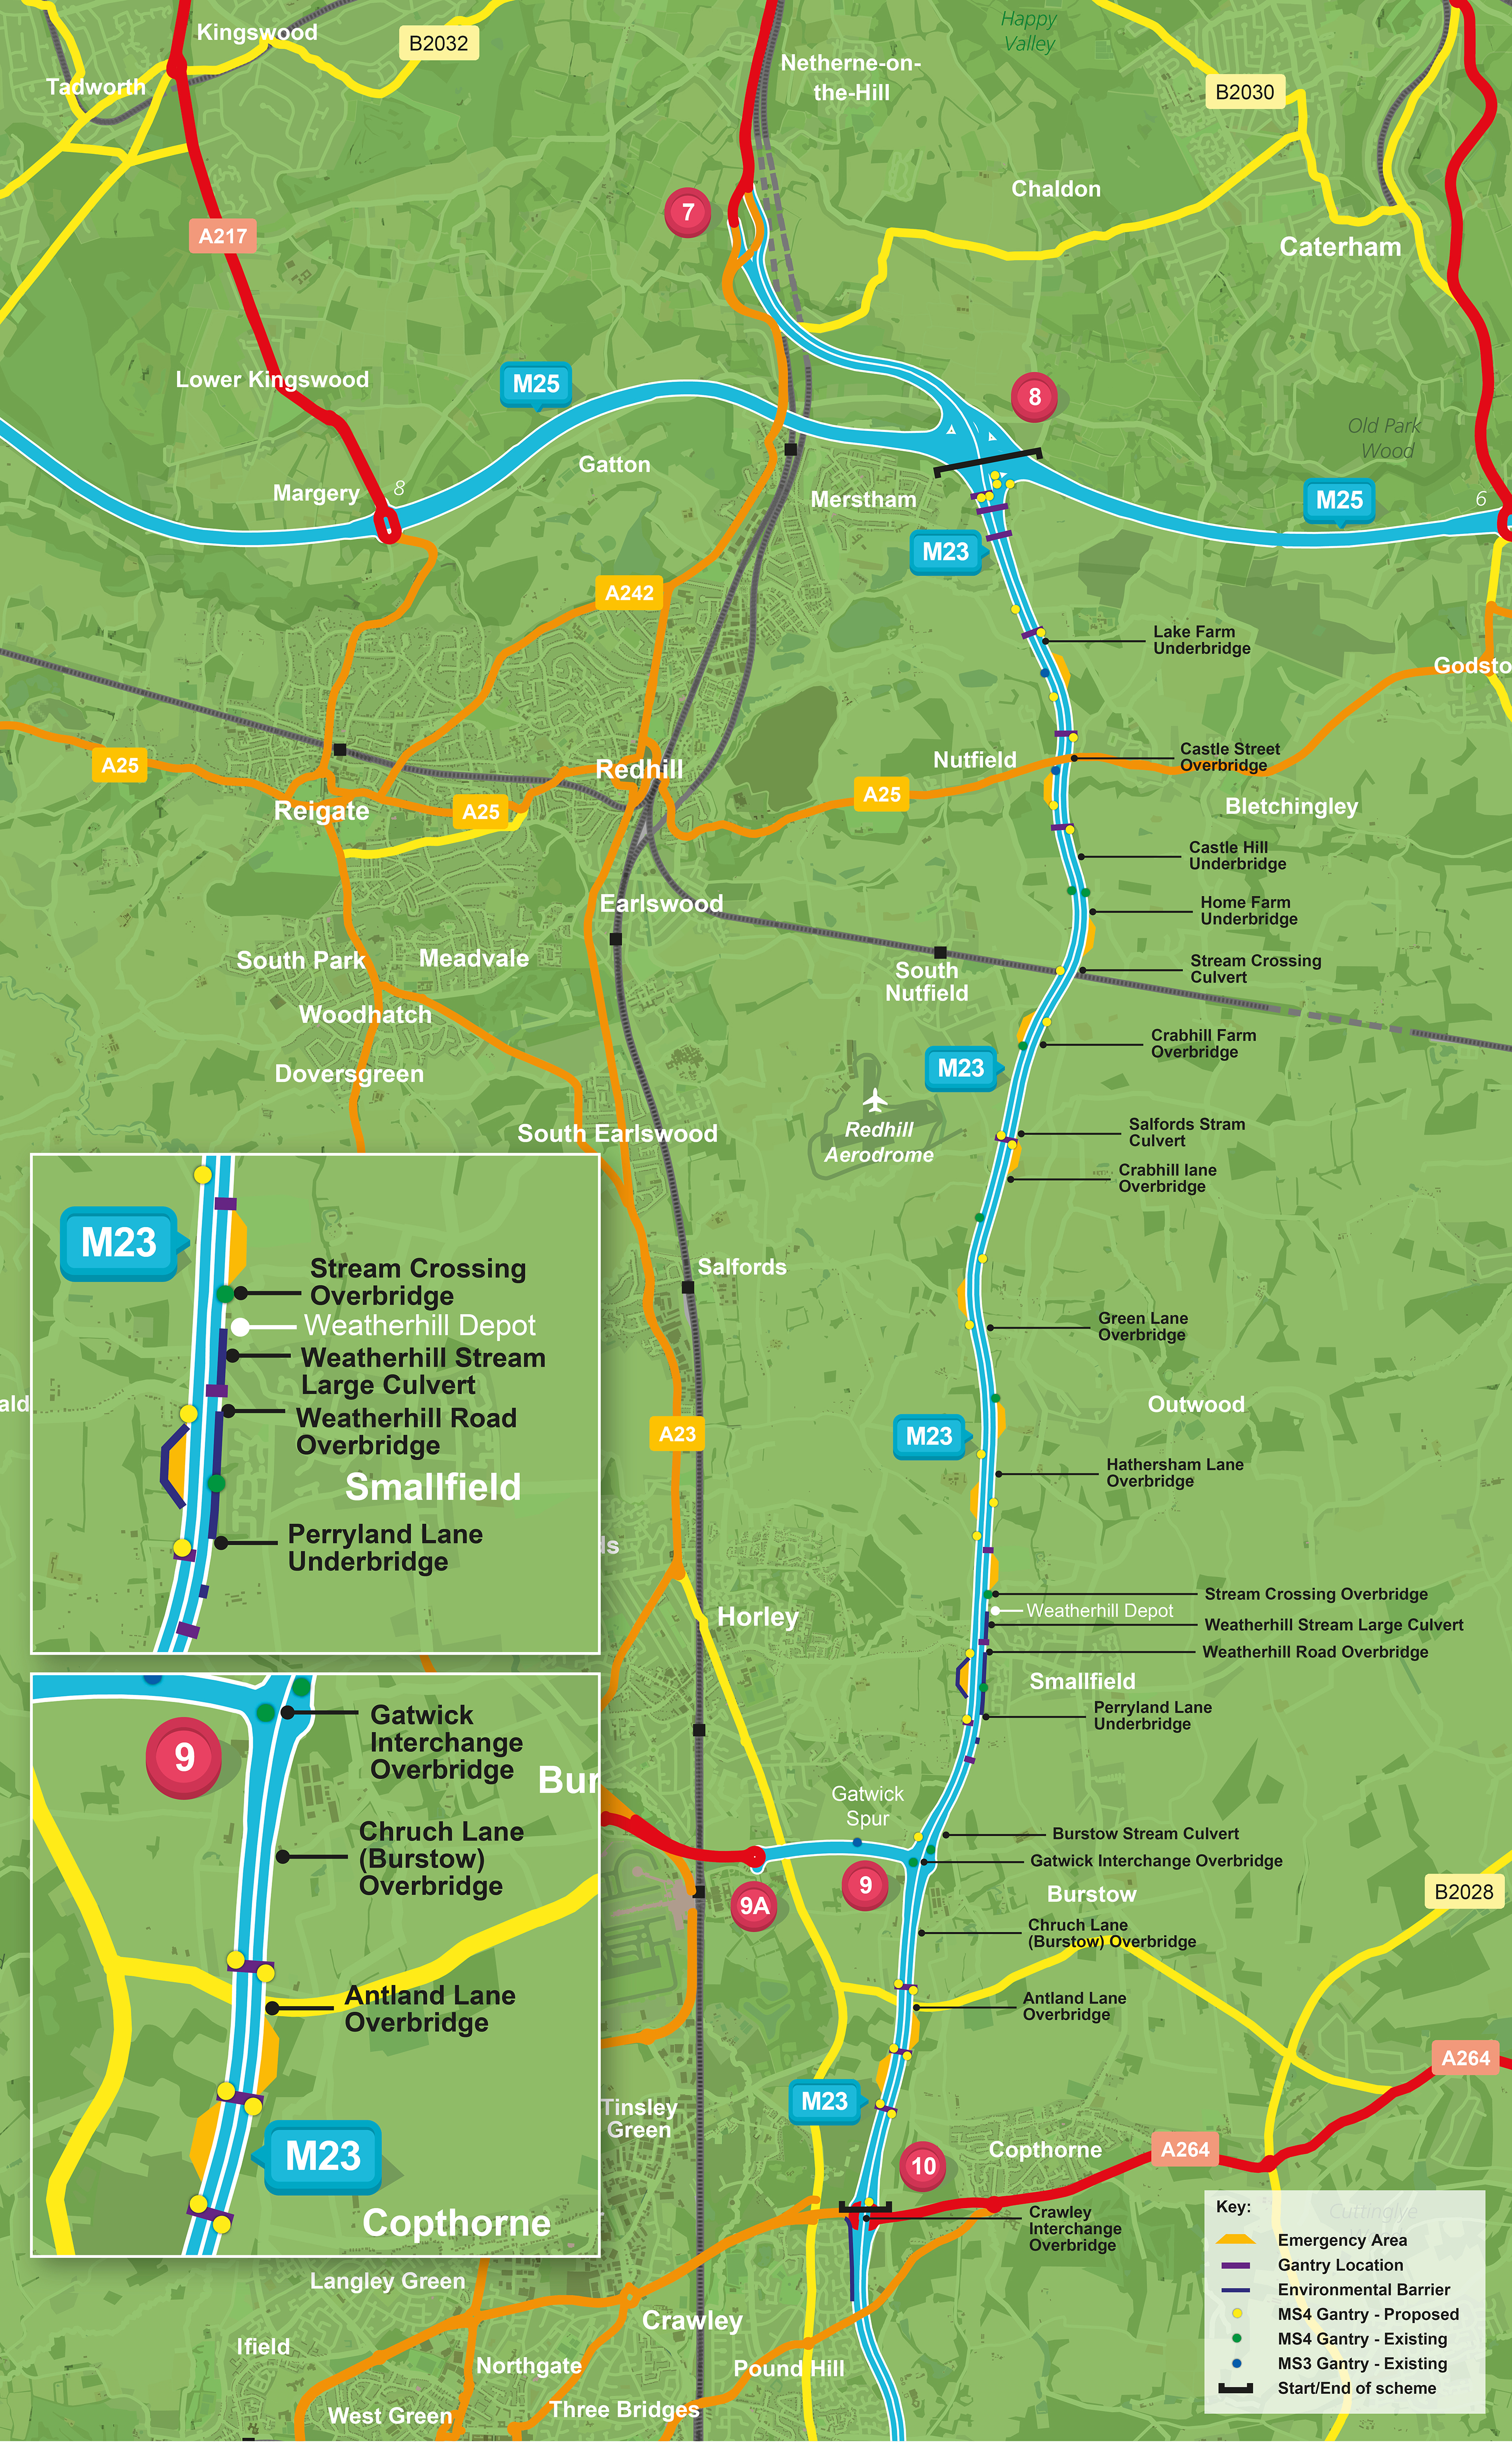 Map Of England Gatwick.Improvements And Major Road Projects M23 Junctions 8 To 10 Smart